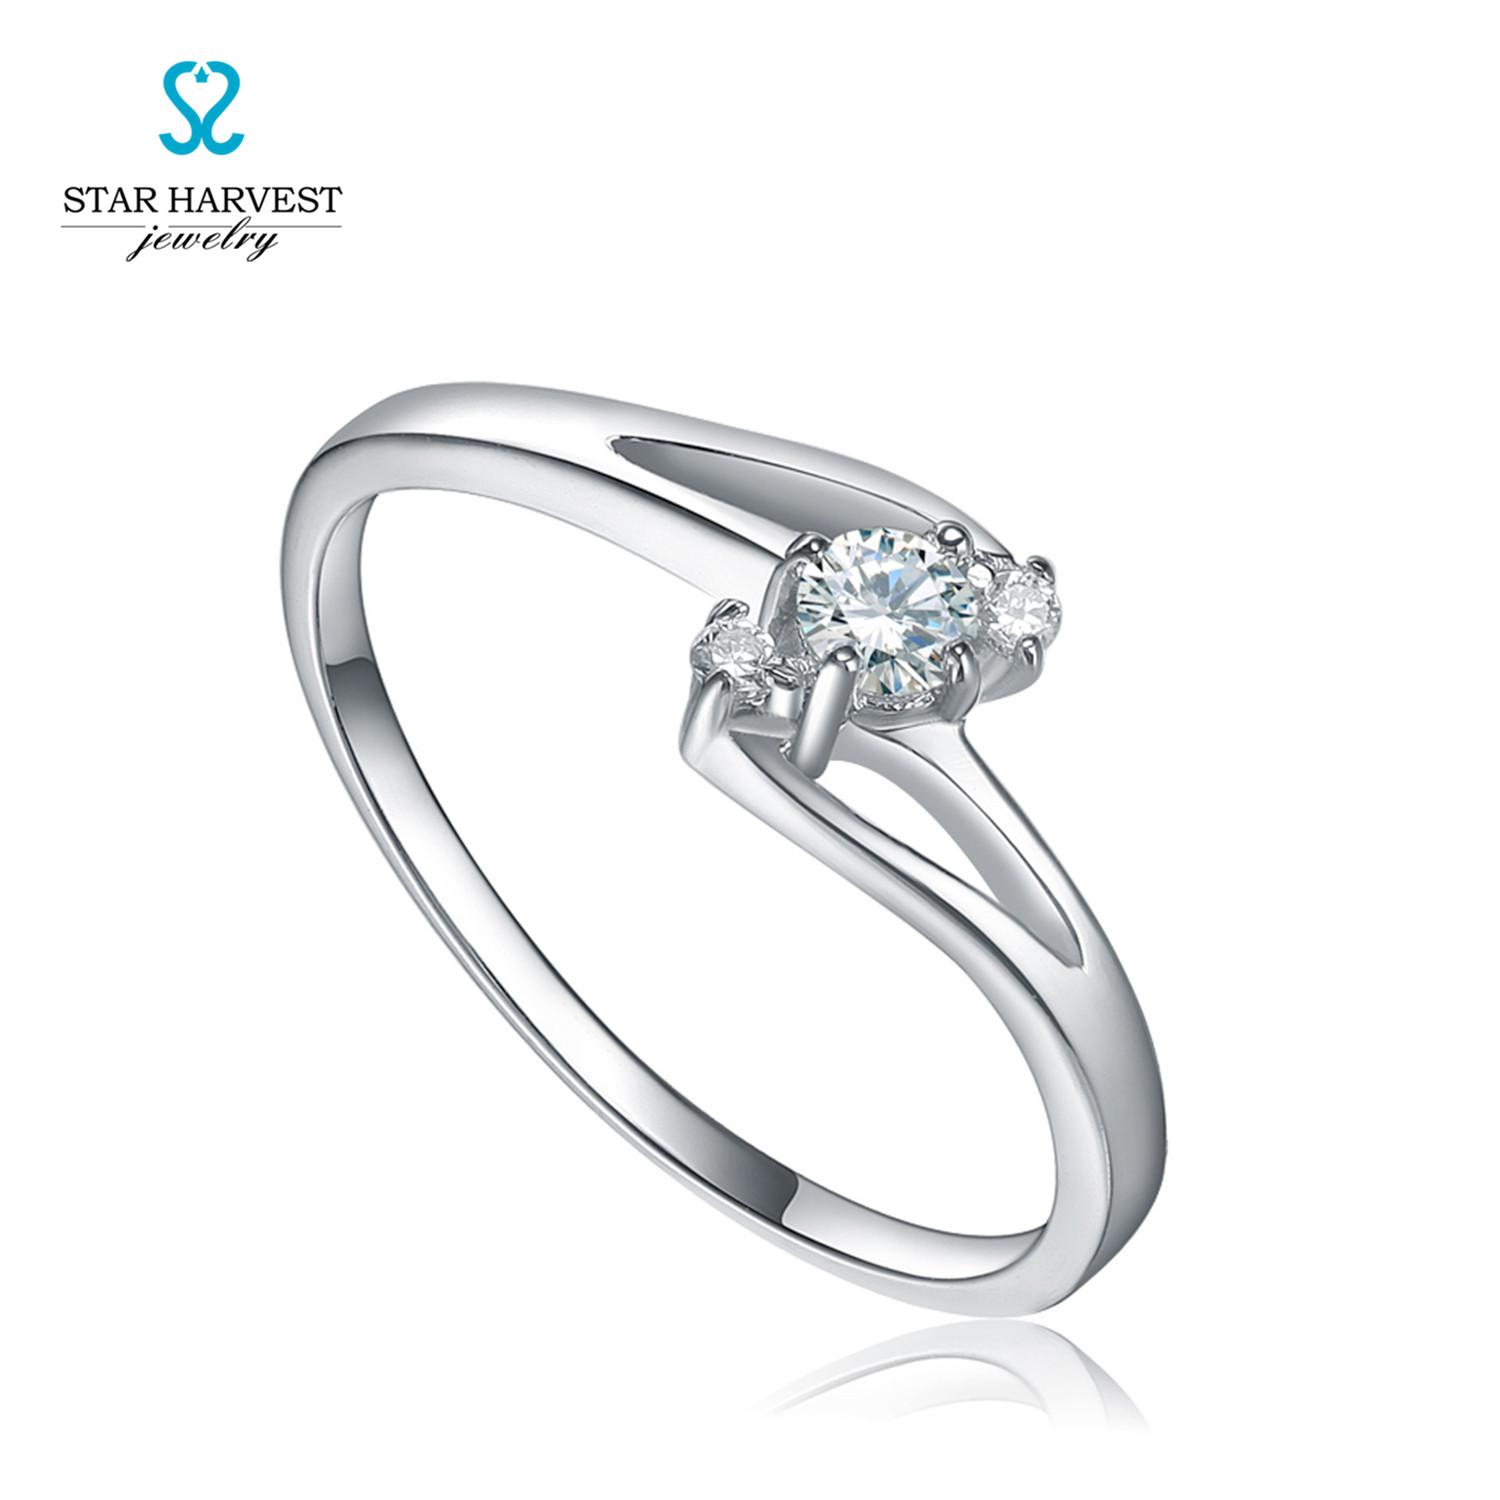 silver wedding rings cost - 28 images - compare prices on wedding